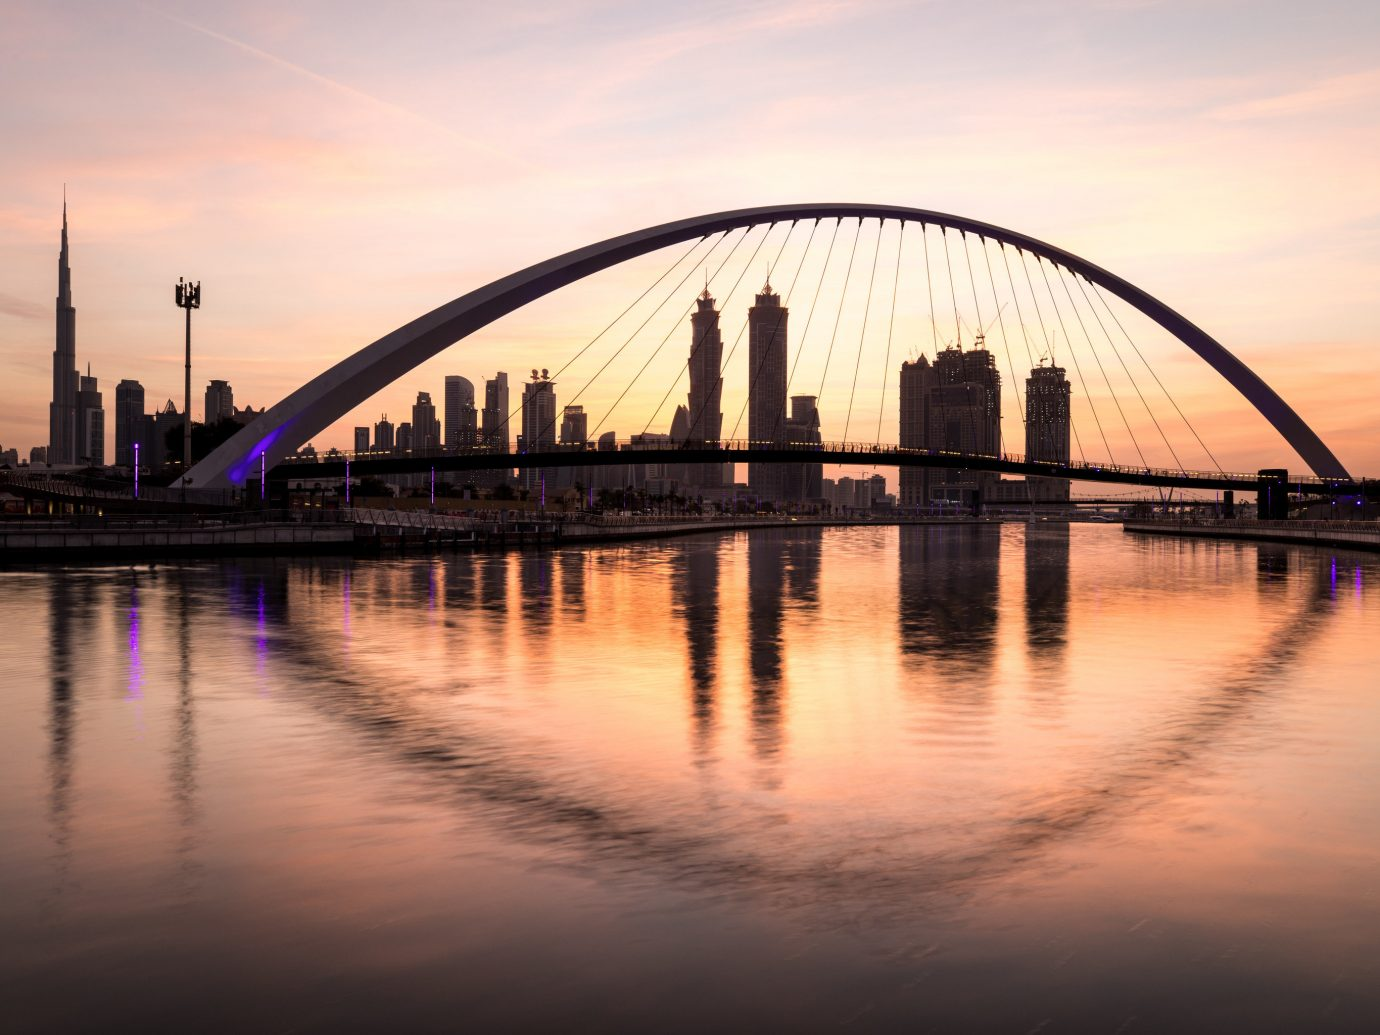 Travel Tips sky water bridge River outdoor reflection Boat landmark building Lake Sunset horizon dusk dawn evening morning skyline sunrise cityscape long sunlight cable stayed bridge nonbuilding structure waterway traveling arch distance